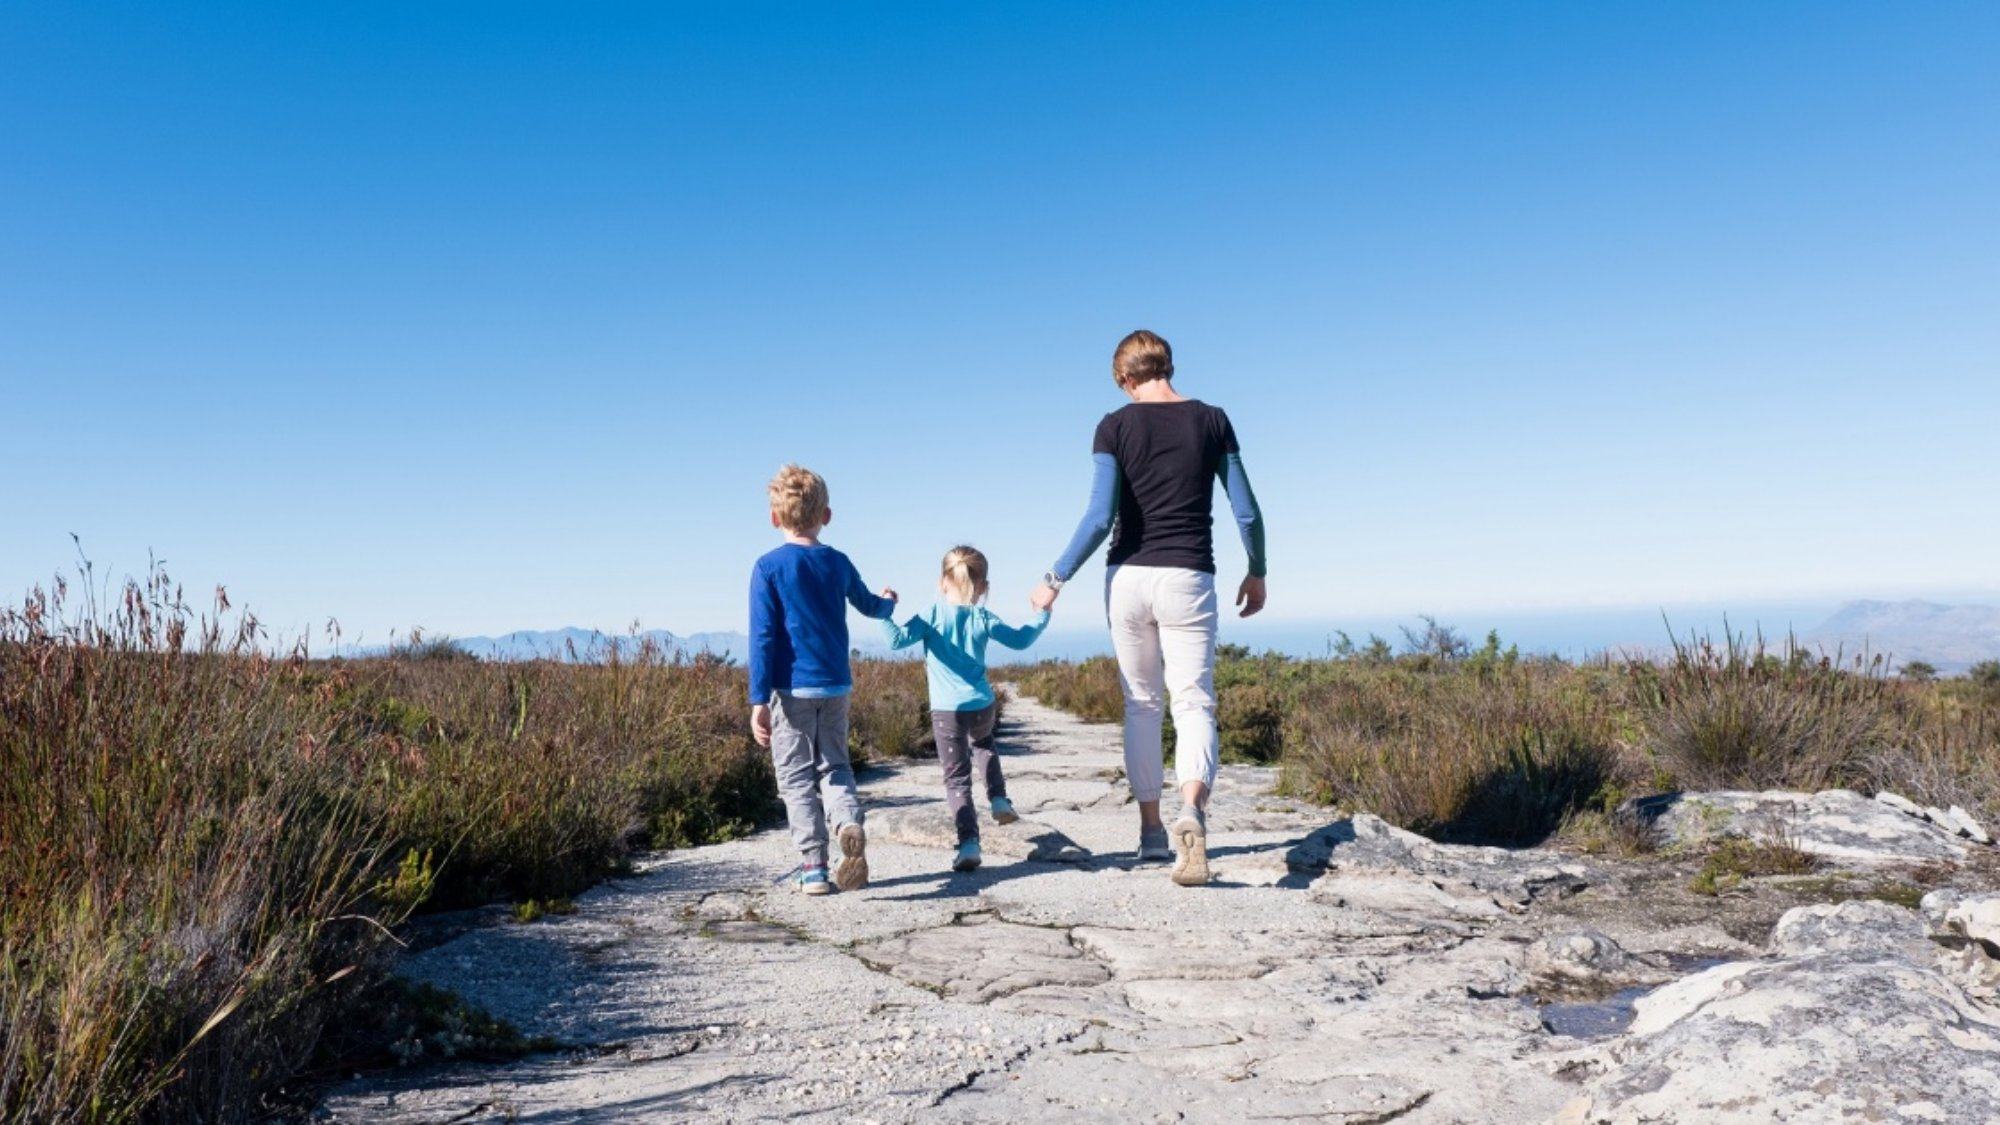 a family walking outdoors